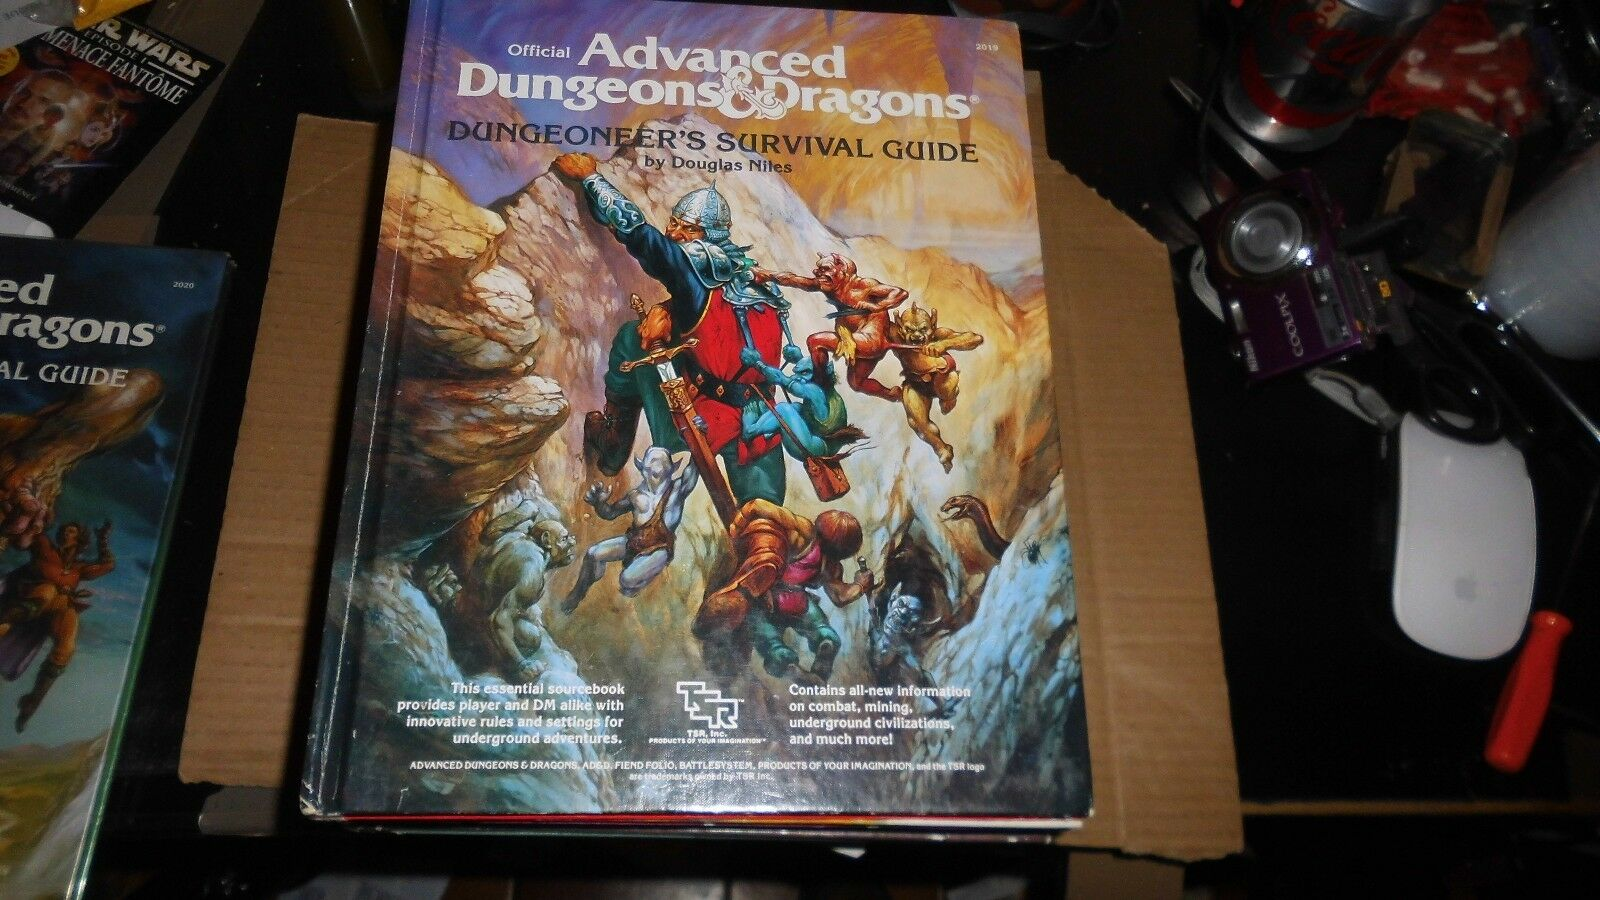 ADVANCED DUNGEONS & DRAGONS - DUNGEONEER'S SURVIVAL GUIDE